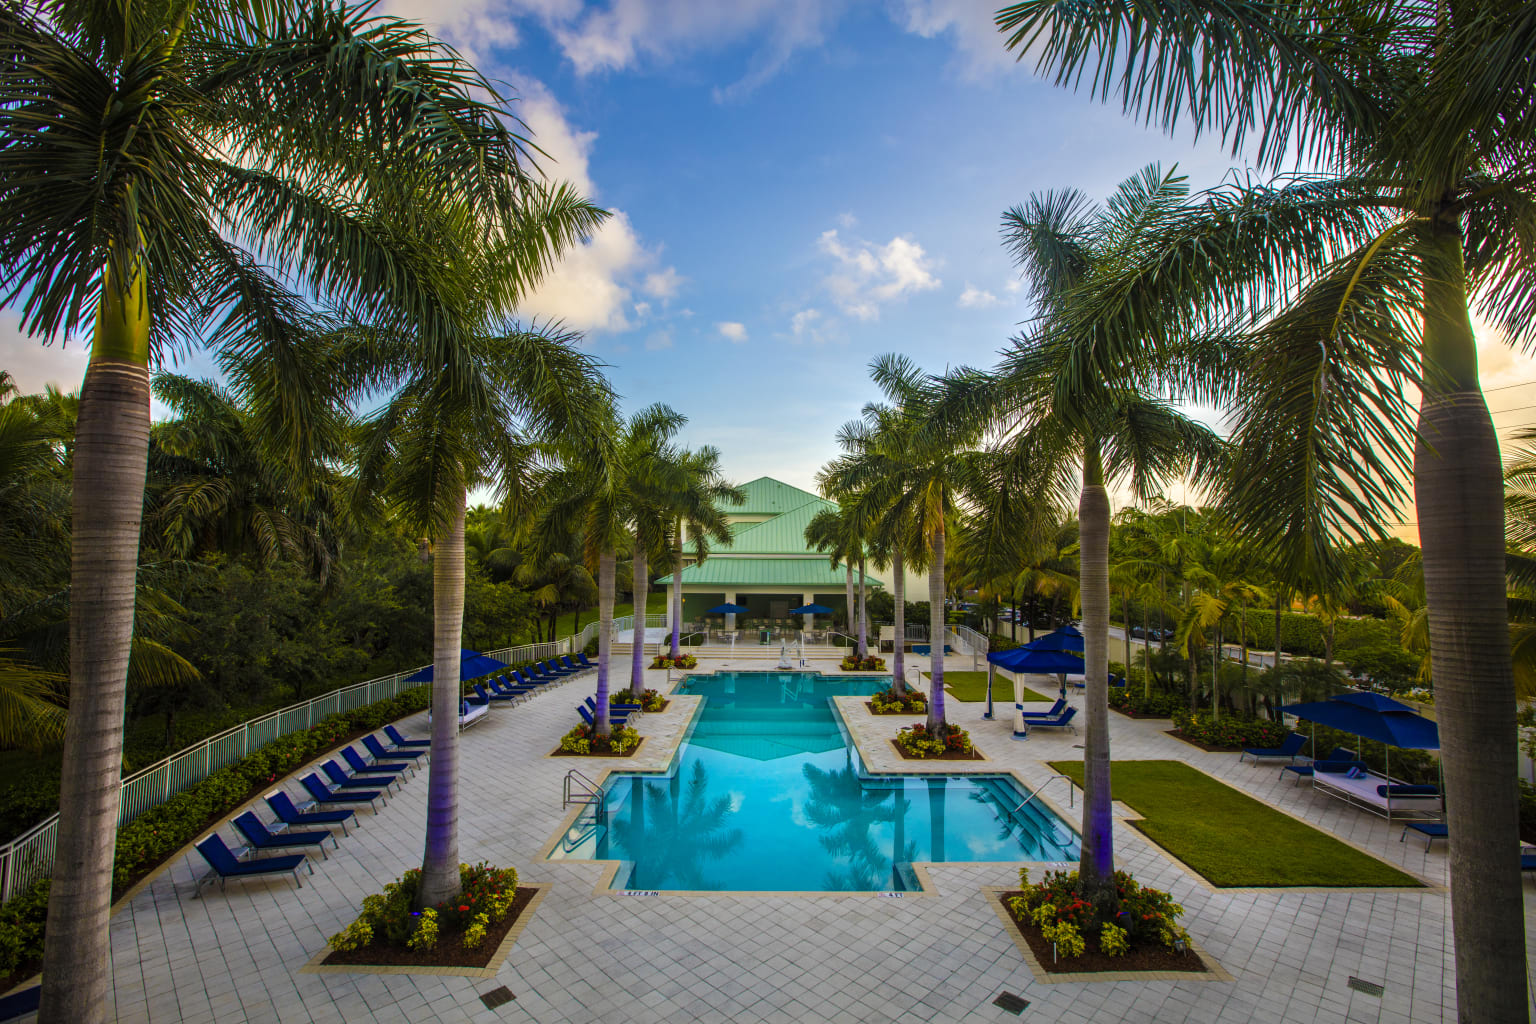 Resorts, Architecture, and Landscapes